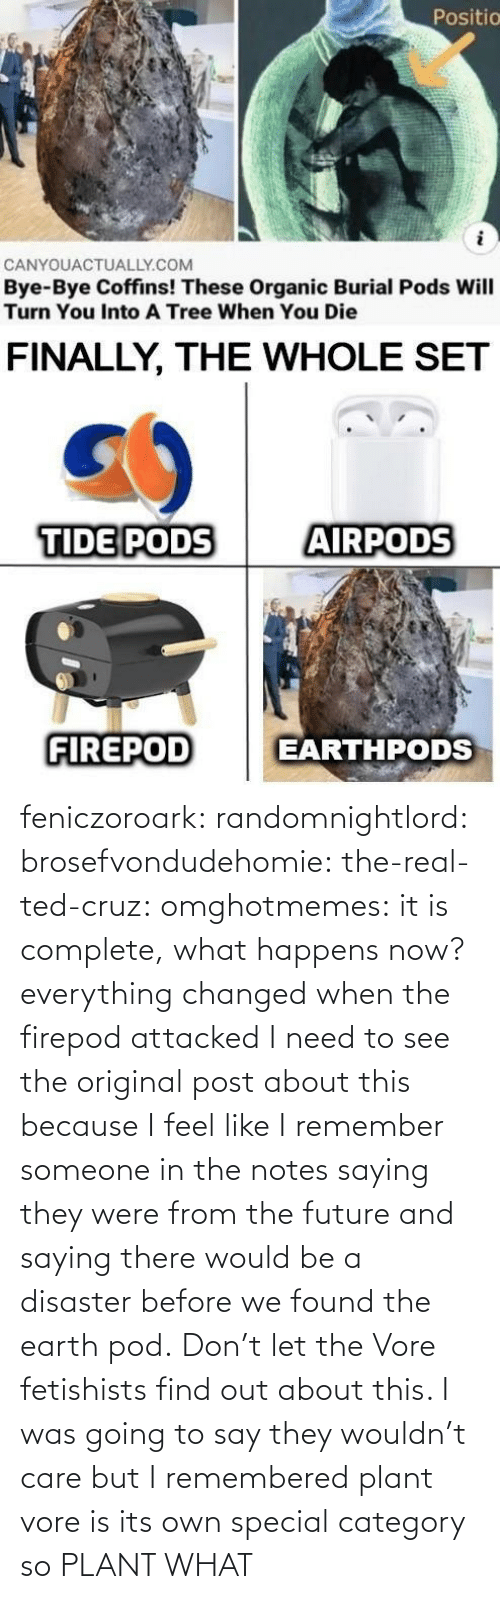 someone: feniczoroark:  randomnightlord:  brosefvondudehomie: the-real-ted-cruz:  omghotmemes: it is complete, what happens now? everything changed when the firepod attacked    I need to see the original post about this because I feel like I remember someone in the notes saying they were from the future and saying there would be a disaster before we found the earth pod.    Don't let the Vore fetishists find out about this.    I was going to say they wouldn't care but I remembered plant vore is its own special category so   PLANT WHAT